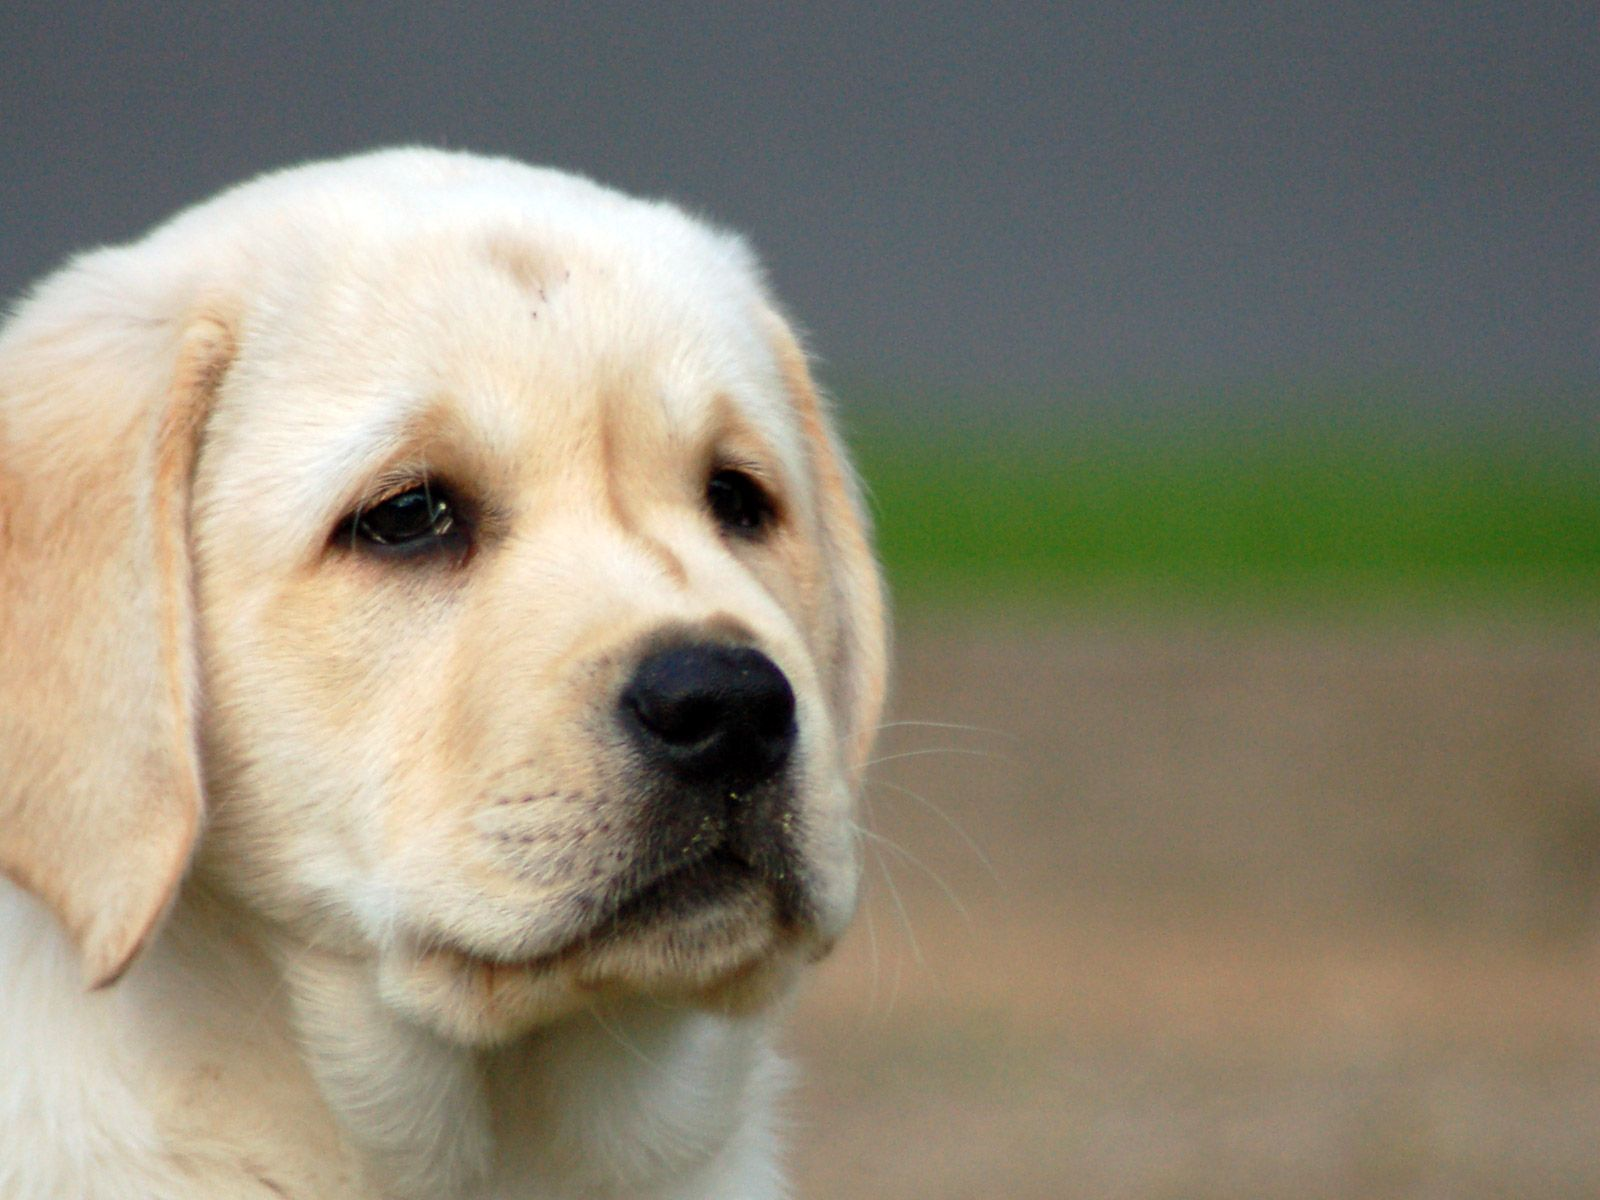 Sophisticated Labrador Wallpapers Lab Puppies Wallpapers Group Sad Pet Gif Sad Puppy Reaction Gif bark post Sad Puppy Gif